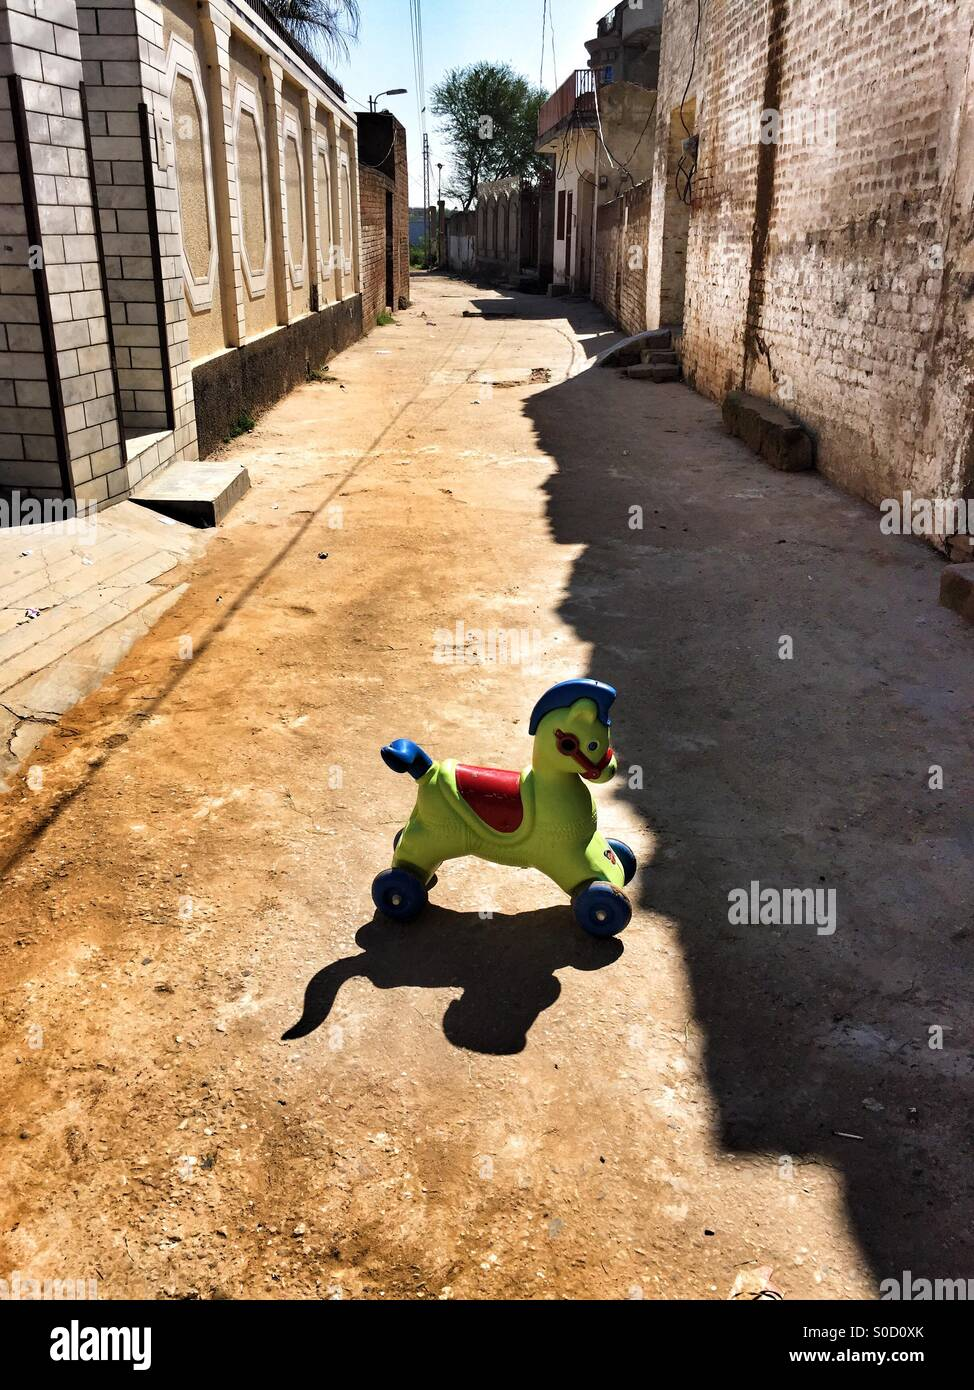 Forsaken horse toy in the street Kharian village Pakistan Asia - Stock Image